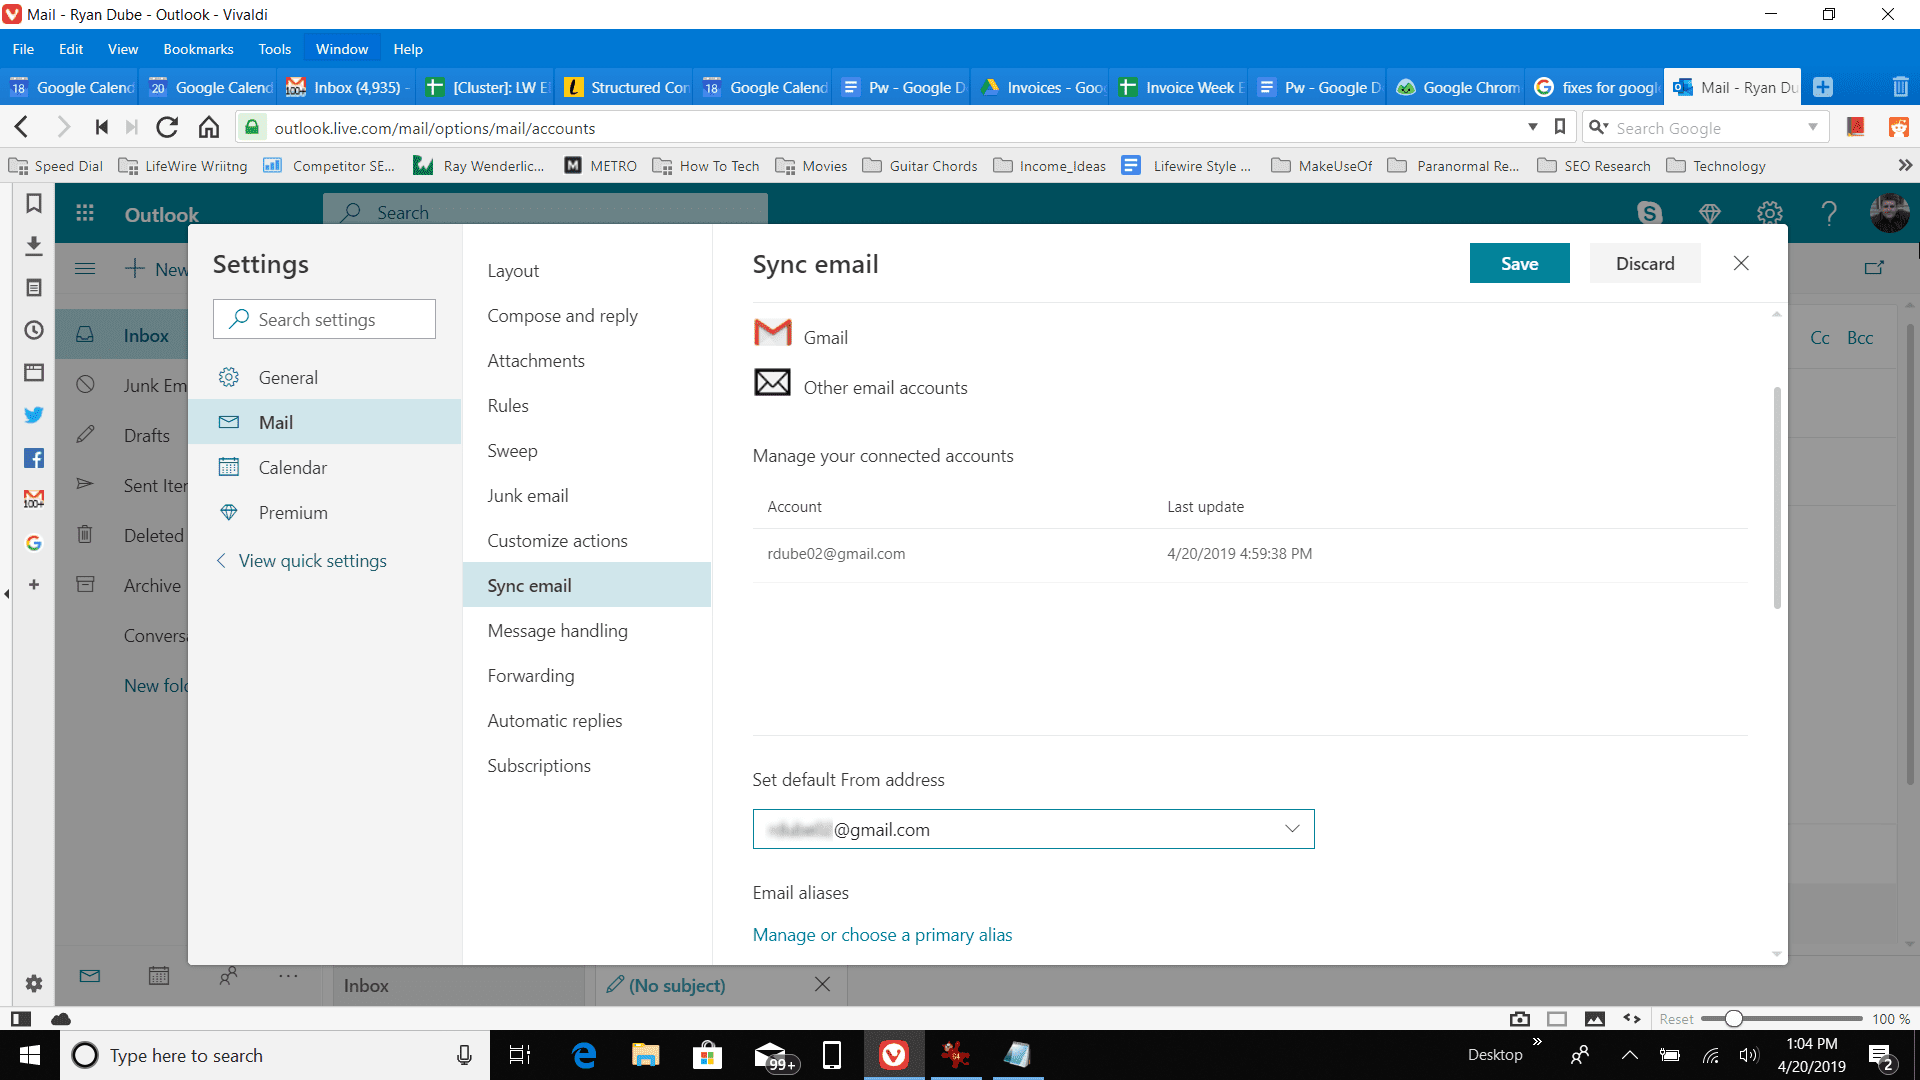 Sync email settings.